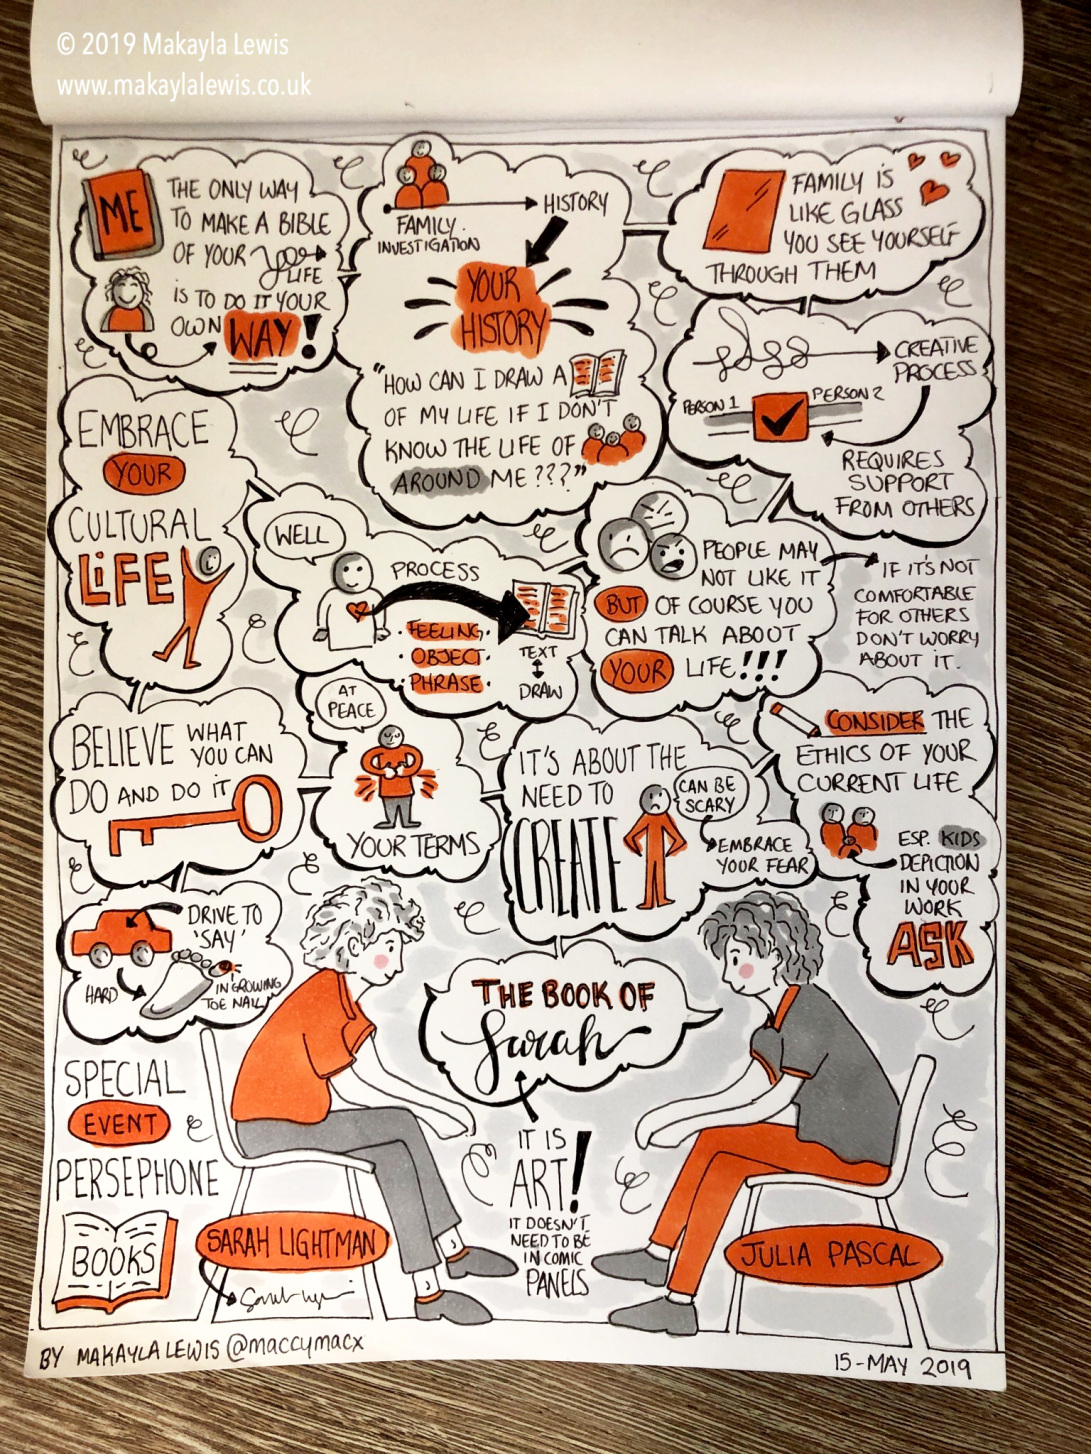 Sketchnote depicting a book discussion.